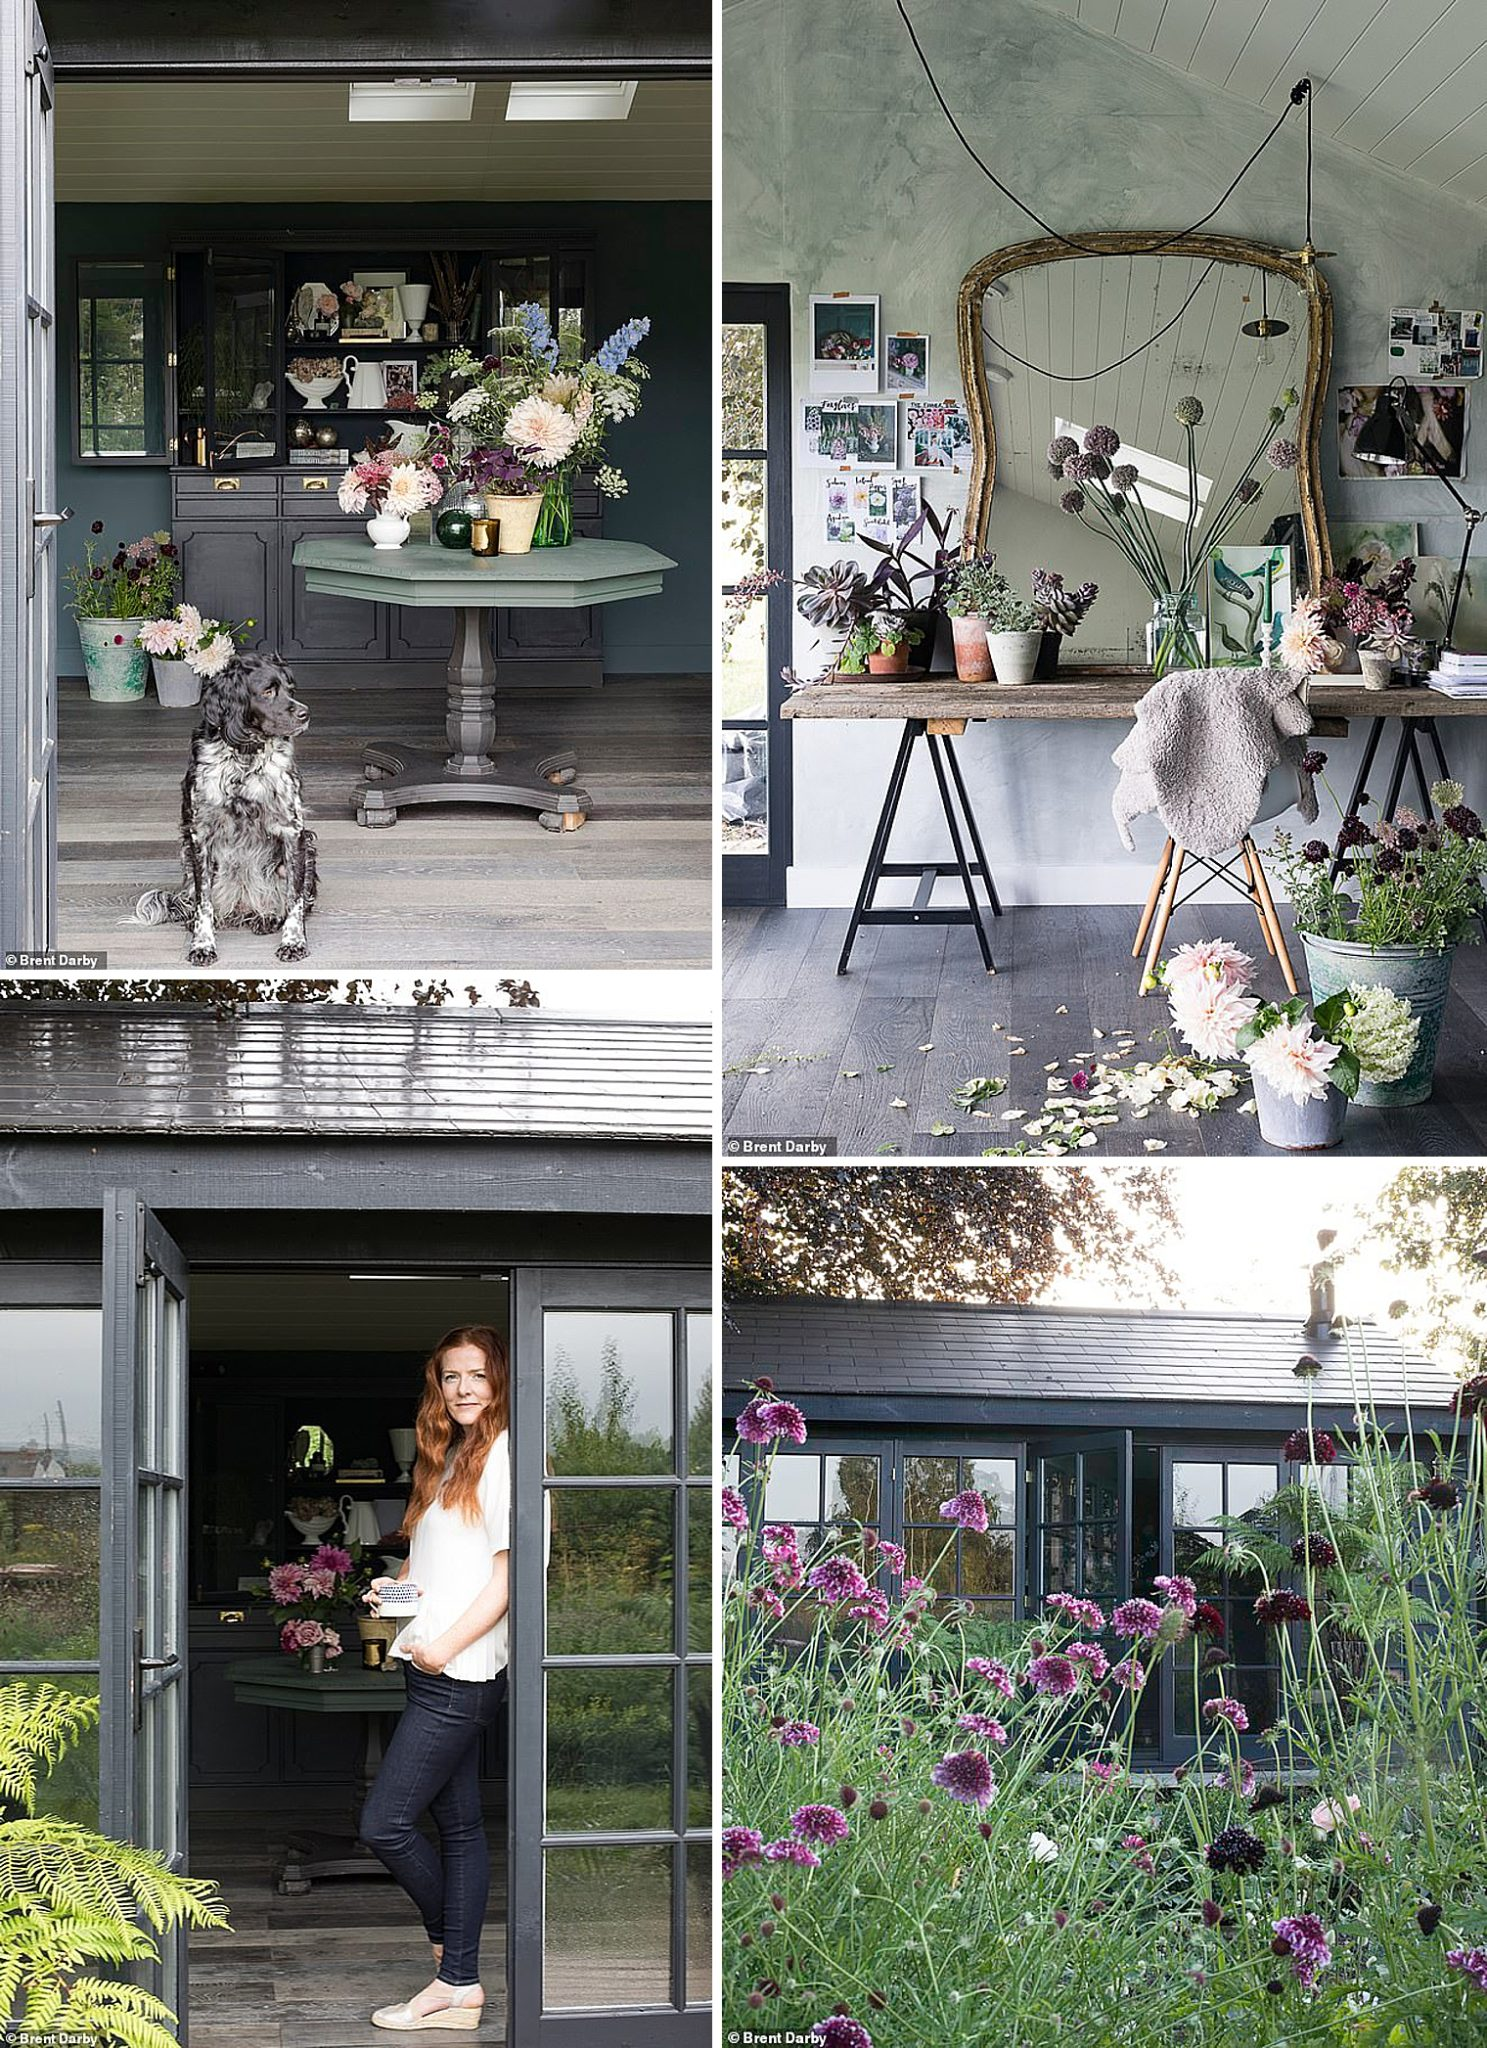 Growing & Styling Flowers Clare Nolan